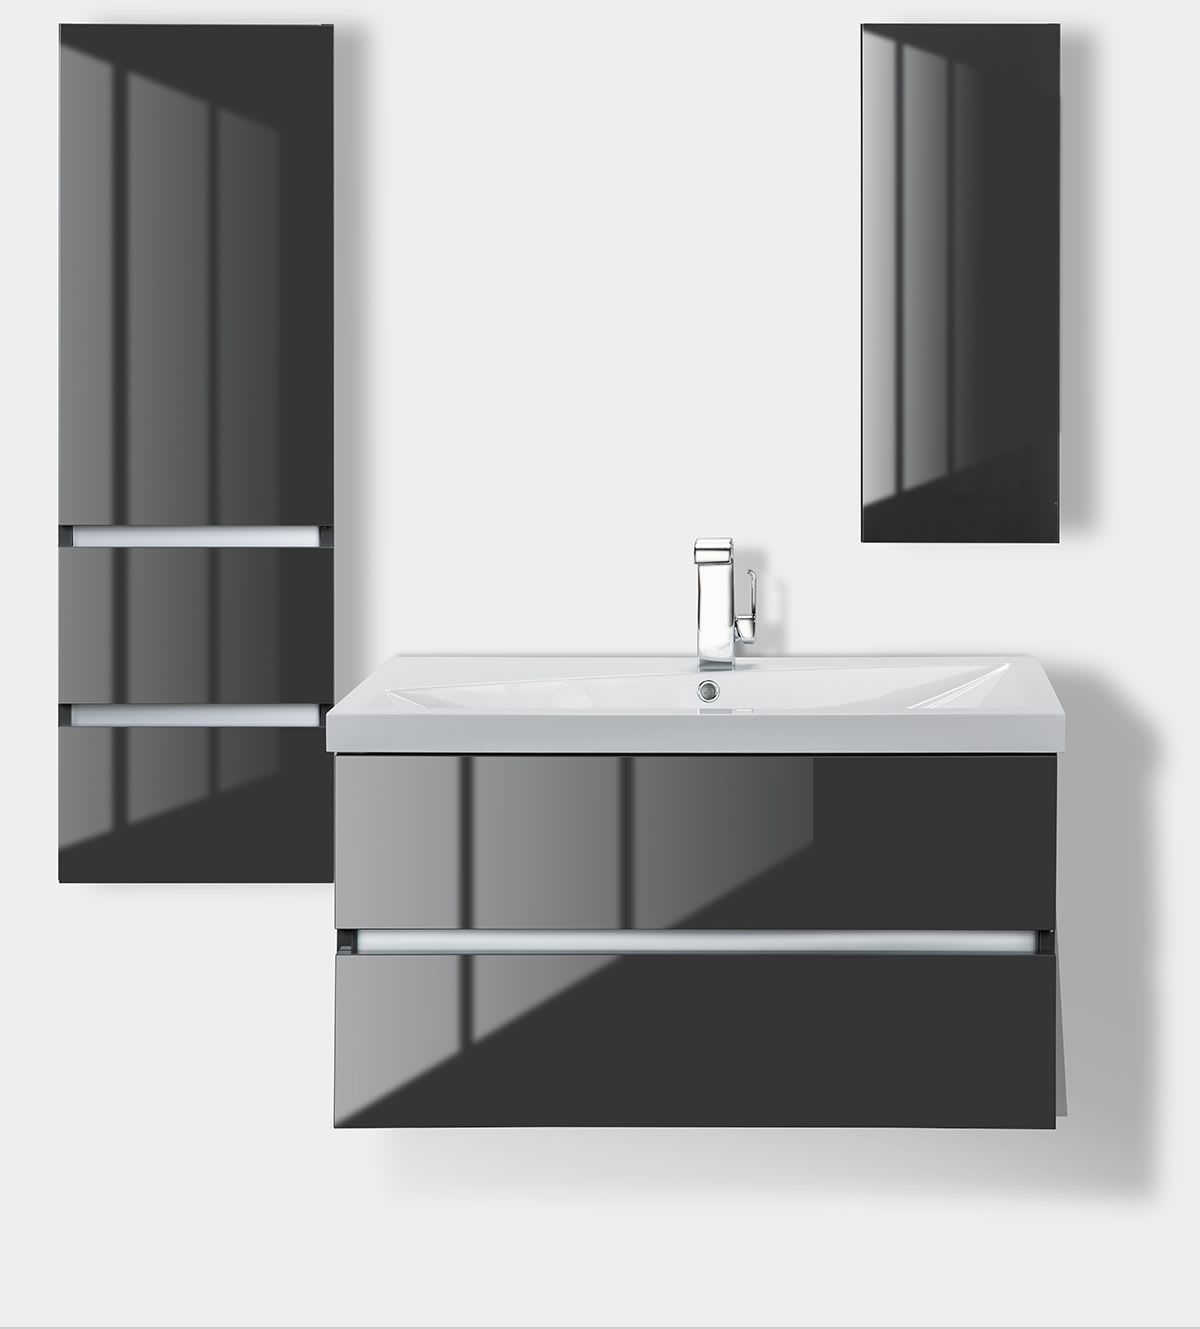 typical for new san vanity pic vanities files bath u height awesome kitchen design jose set concept and trends bathroom cutler single silhouette unbelievable home